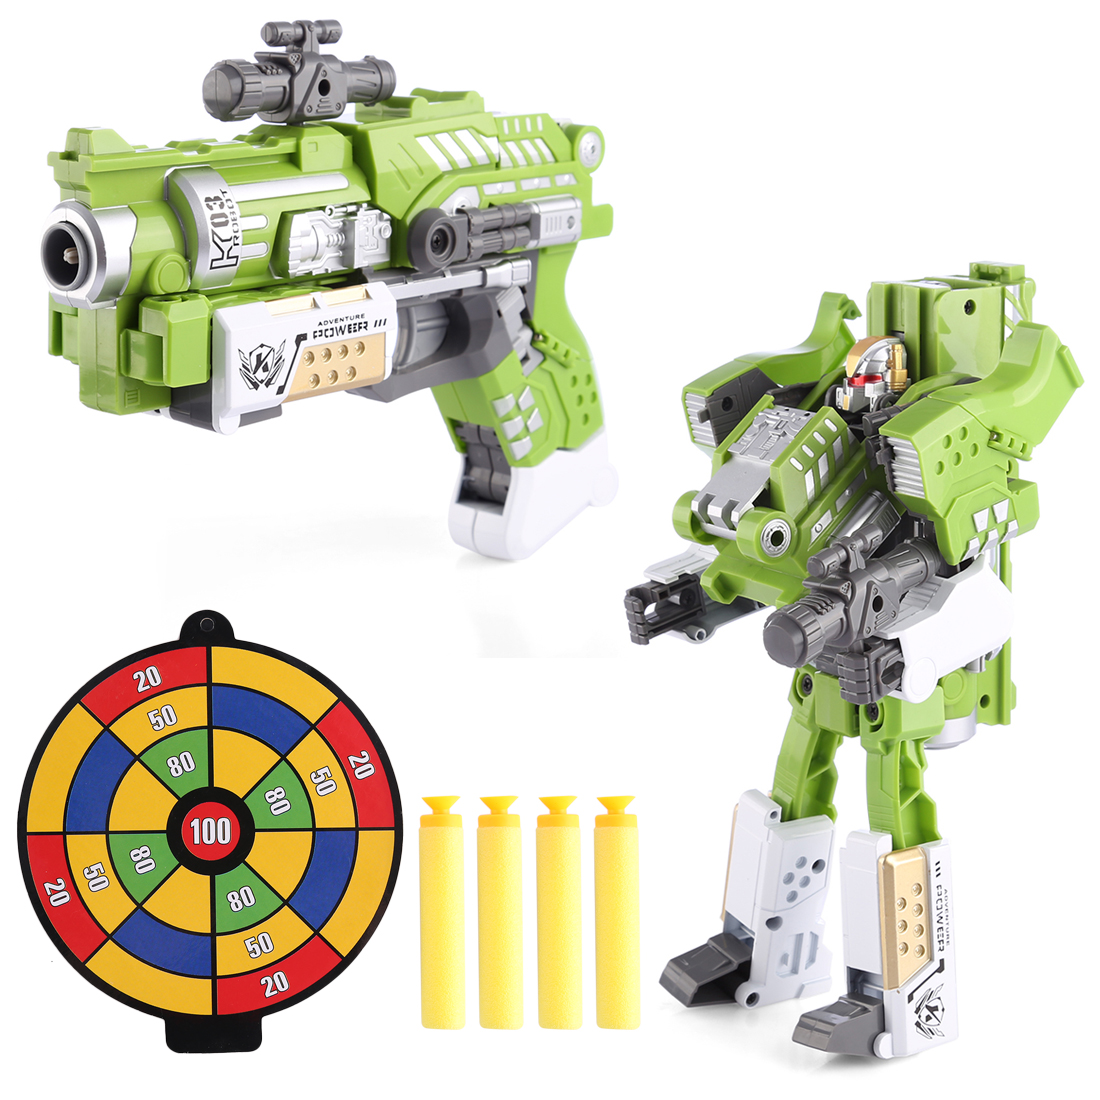 KaiLi Alloy Soft Air Blaster Educational Toy - Green Battle Deformation Robot Type